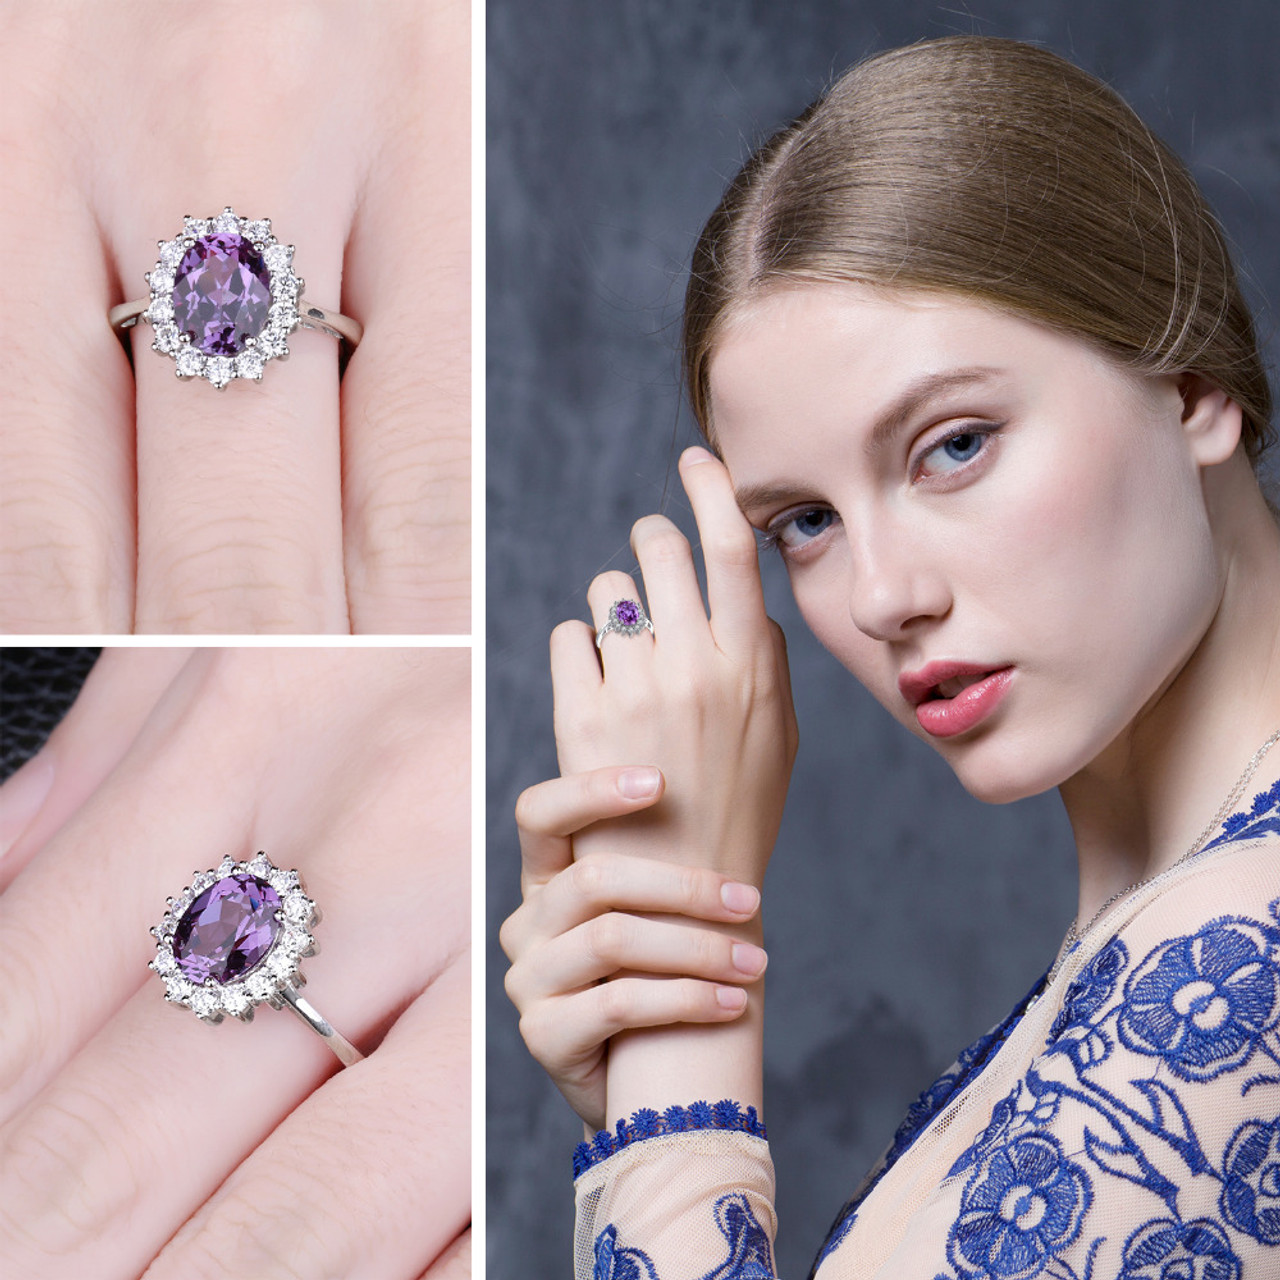 Princess Diana Wedding Ring.Jewelrypalace Princess Diana 3 22 Ct Created Alexandrite Sapphire Wedding Rings For Women 925 Sterling Silver Brand Fine Jewelry